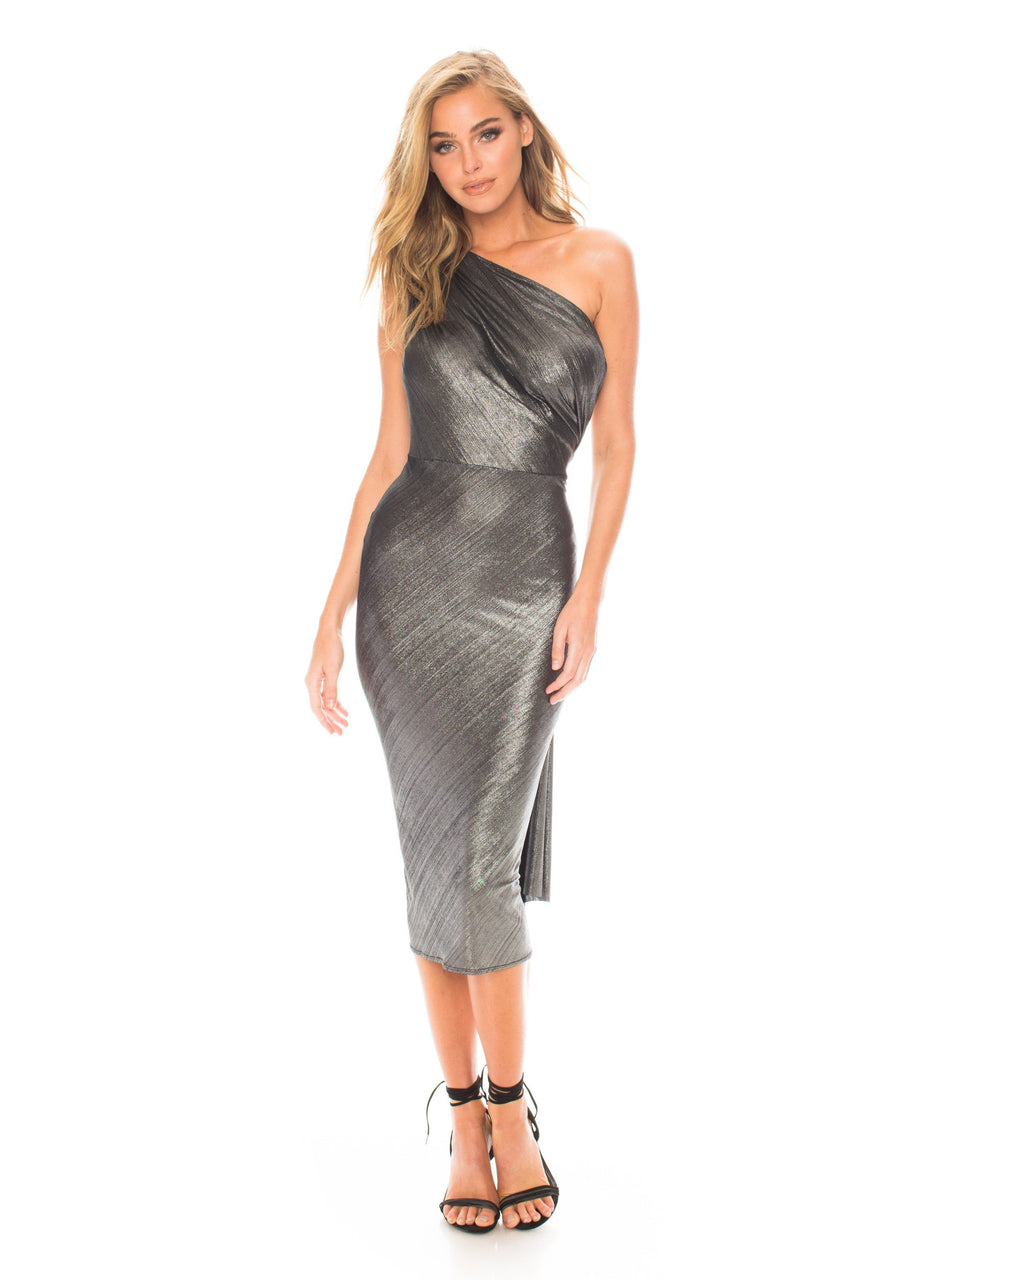 Model wearing Kong dress in Silver Metal by Katie May